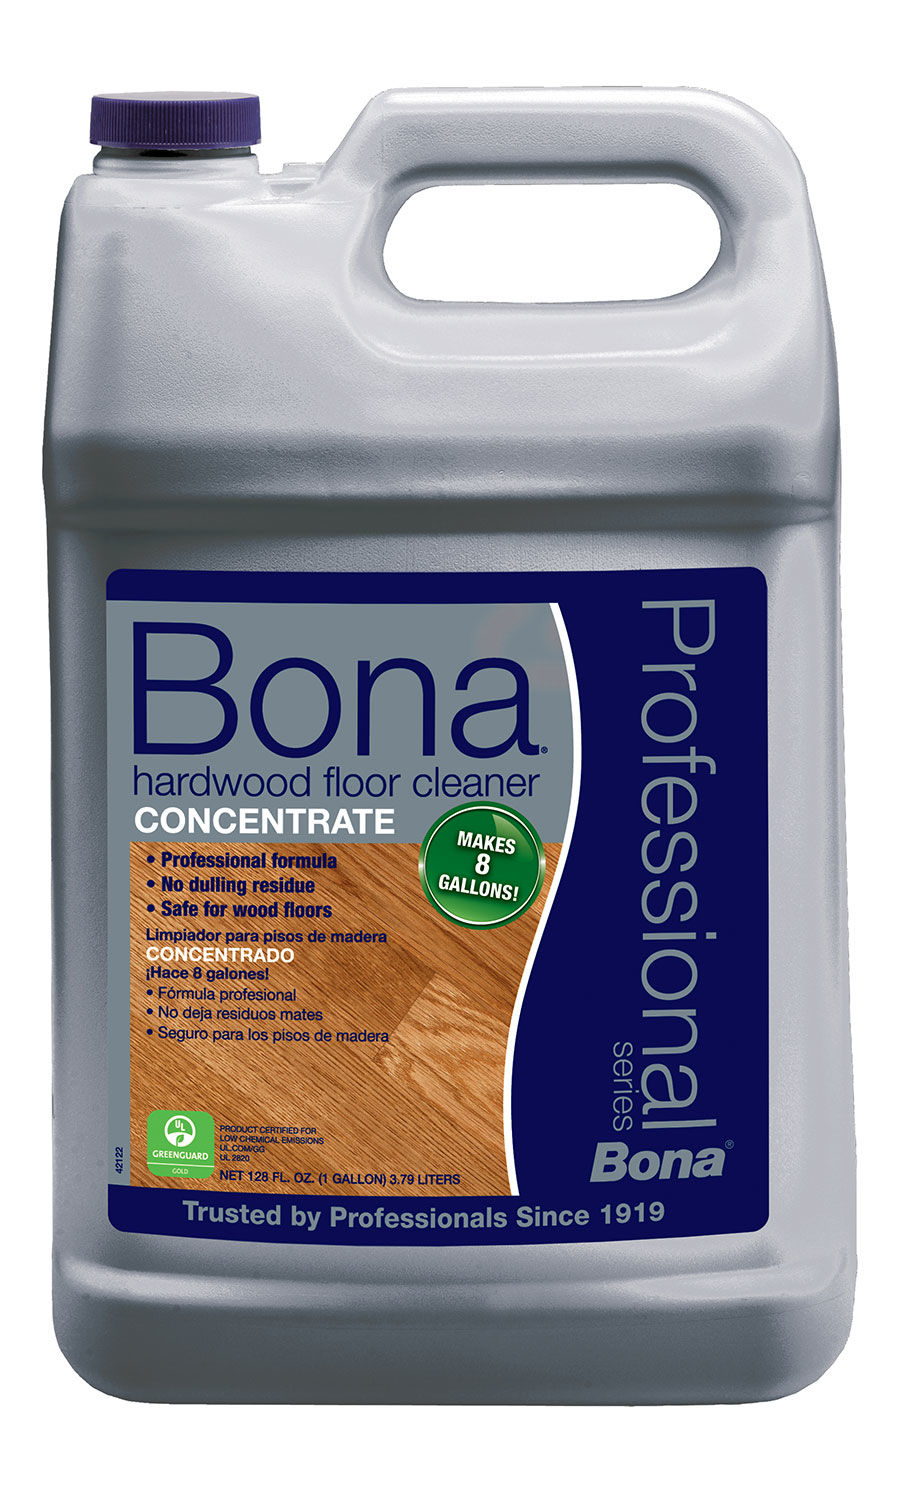 Bona Hardwood Floor bona floor care the best hardwood floor care cleaning and maintenance products youtube Bona Pro Series Hardwood Floor Cleaner Concentrate